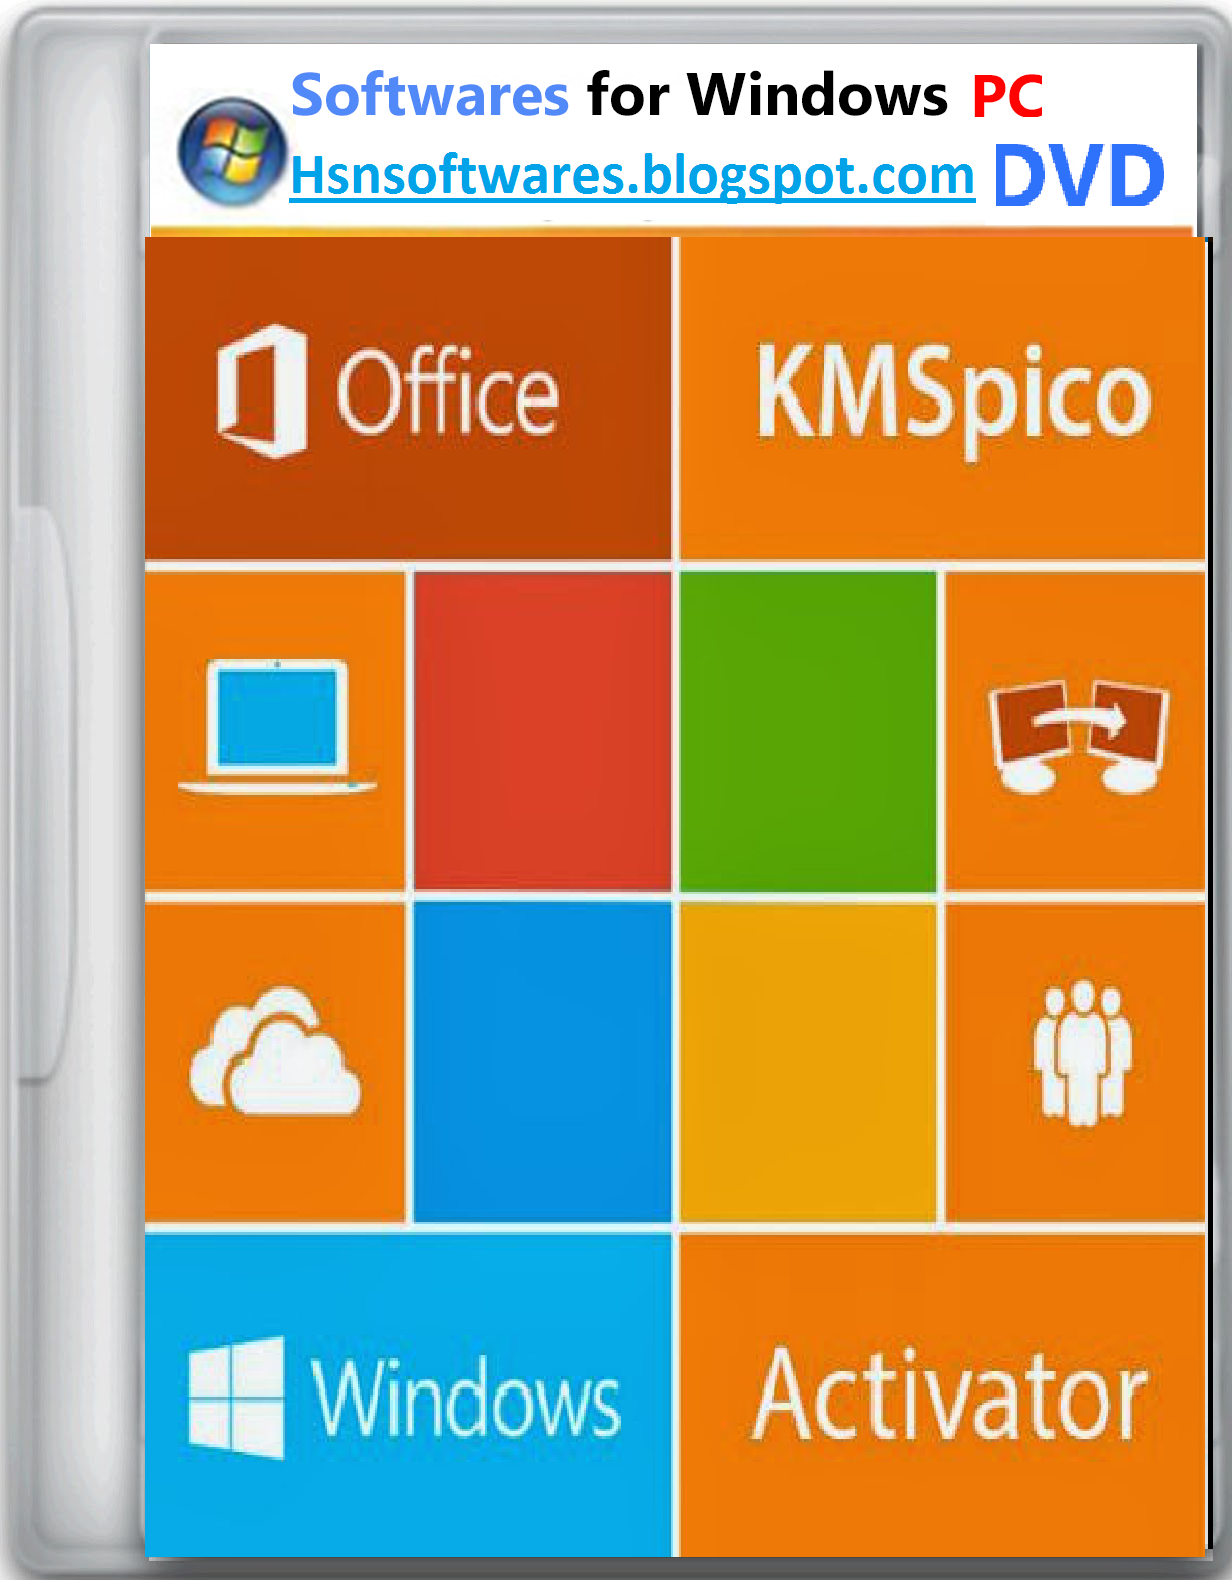 kmspico ms office 2016 activator free download